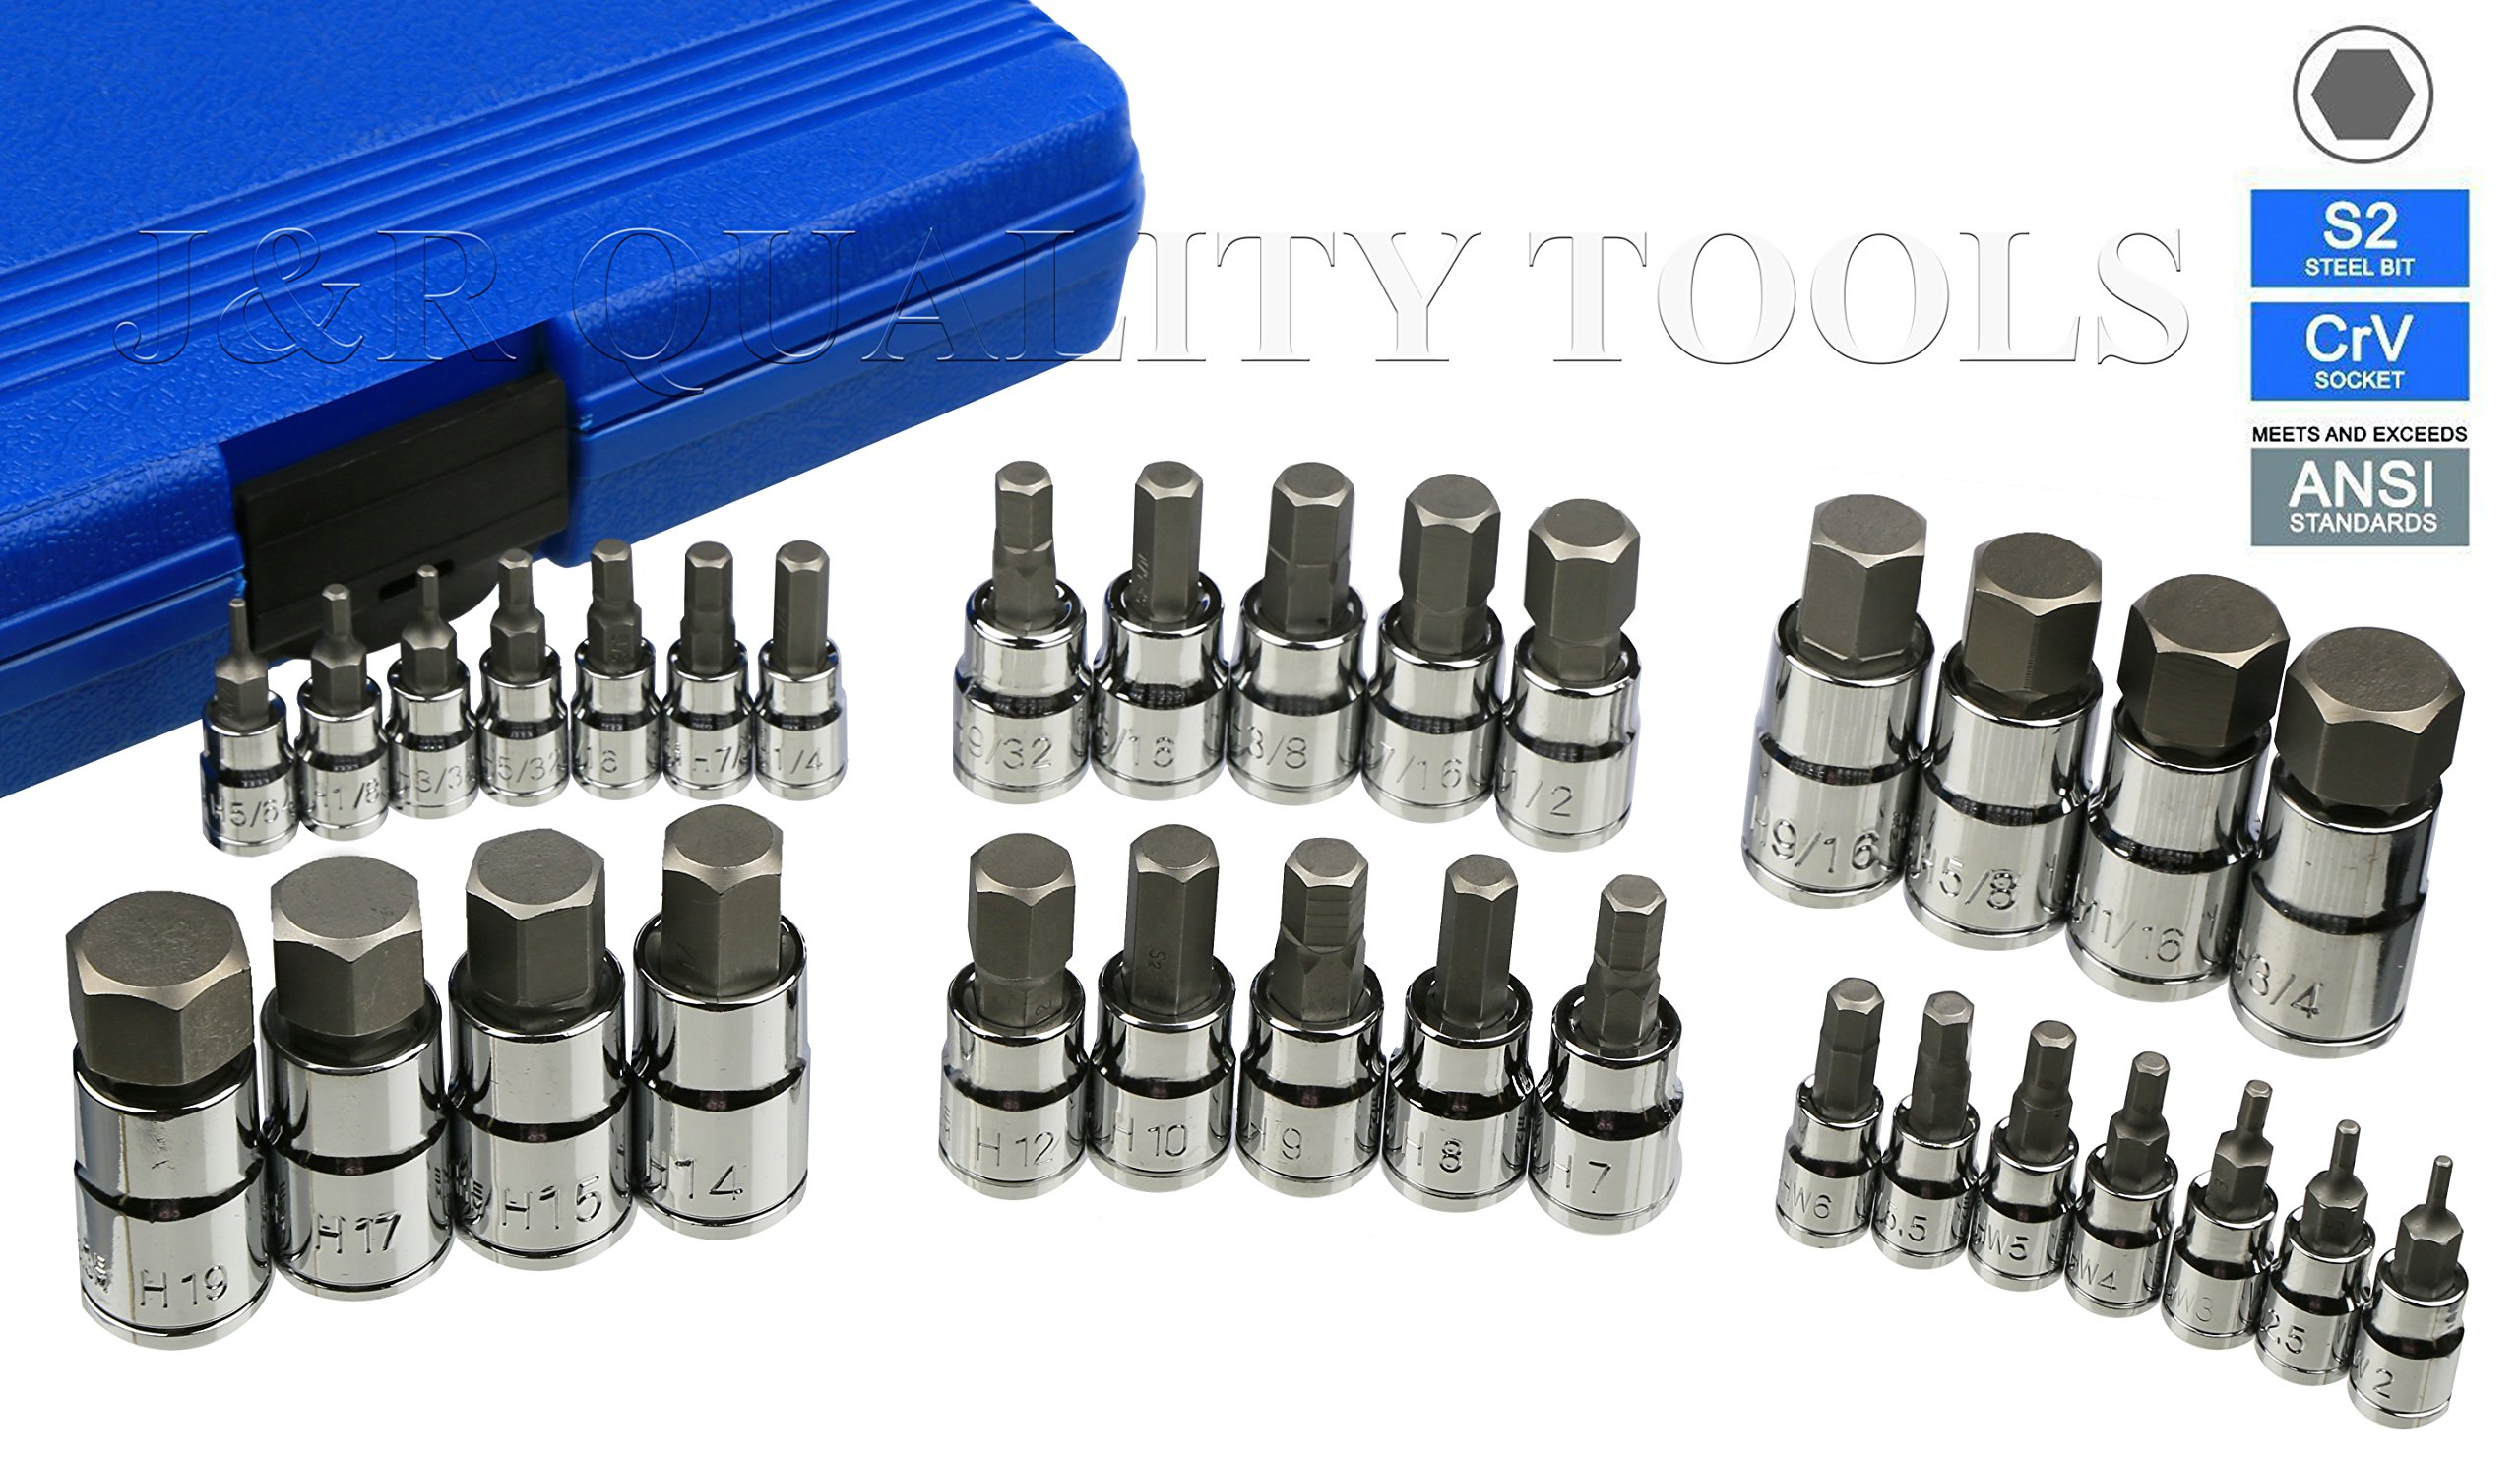 J&R Quality Tools Hex Allen Bit Socket Set, SAE and Metric, S2 Steel  32-Piece Set by J&R QUALITY TOOLS